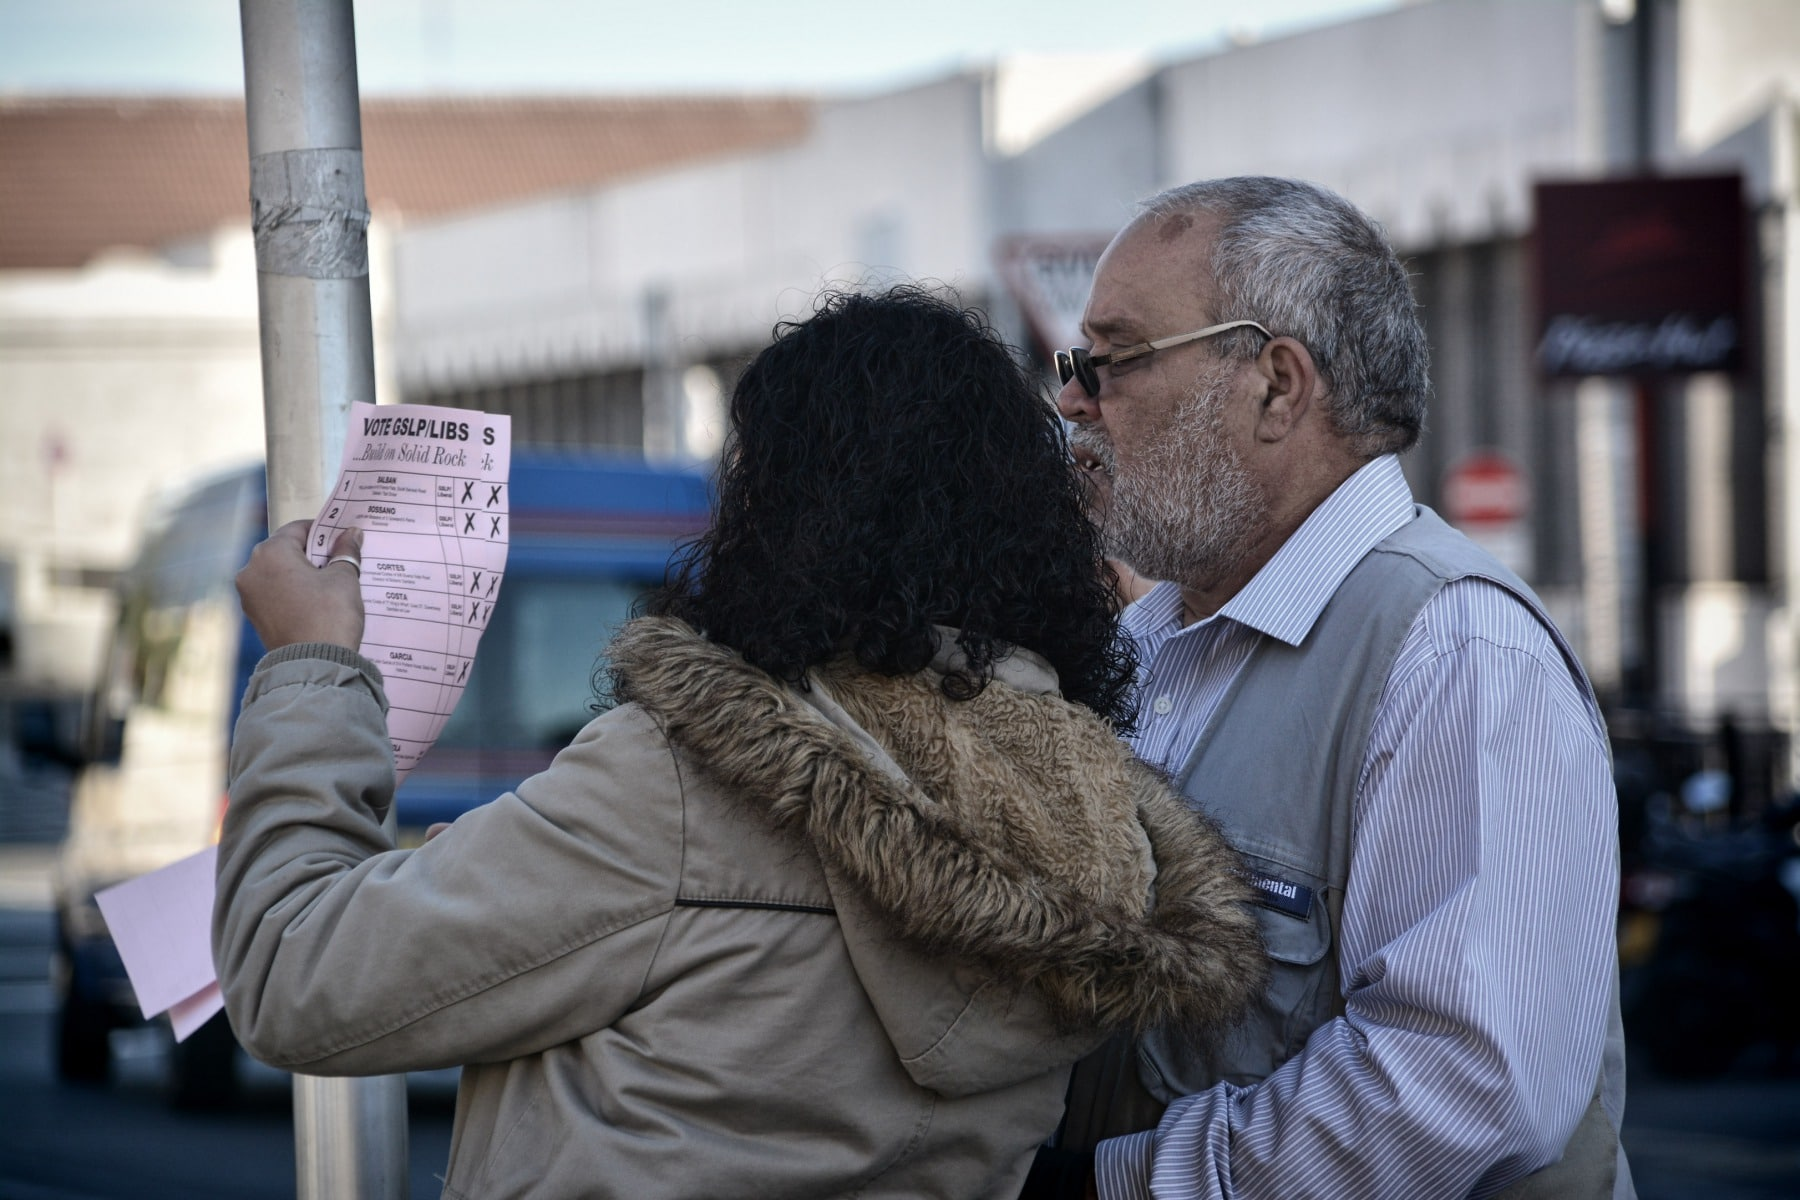 "Gibraltar - 26th November 2015 - (Both Joe Bossano for GSLP/Libs and Kim Karnani Santos attended Line Wall Road where tensions were high at one point this morning). Police were today requested to make their presence known at the polling station by Line Wall Road after GSD activists handing leaflets outside the polling station are alleged to have made complaints over the use of the language used by a GSLP/Liberal activist handing leaflets to voters of Moroccan origins.According to reports received by Core Photography the GSD activists complained that the use of the native Moroccan language should not be allowed by those guiding voters outside the polling station, claiming the ""official language in Gibraltar is English,"" according to witnesses present during the incident. This resulted in tensions between the activists. Police were present to calm down the situation which has been played down as a minor incident. Executive members of the GSD approached over the incident have indicated that they were not at the time aware of such an incident, but have indicated that they would not support such actions and would be looking into the matter.No further known incidents have been reported throughout the day.Voting has been steady throughout the day, with politicians attending the polling stations throughout the morning as voters queue up to vote.The Commissioner of Police has attended polling stations to oversee security in person."